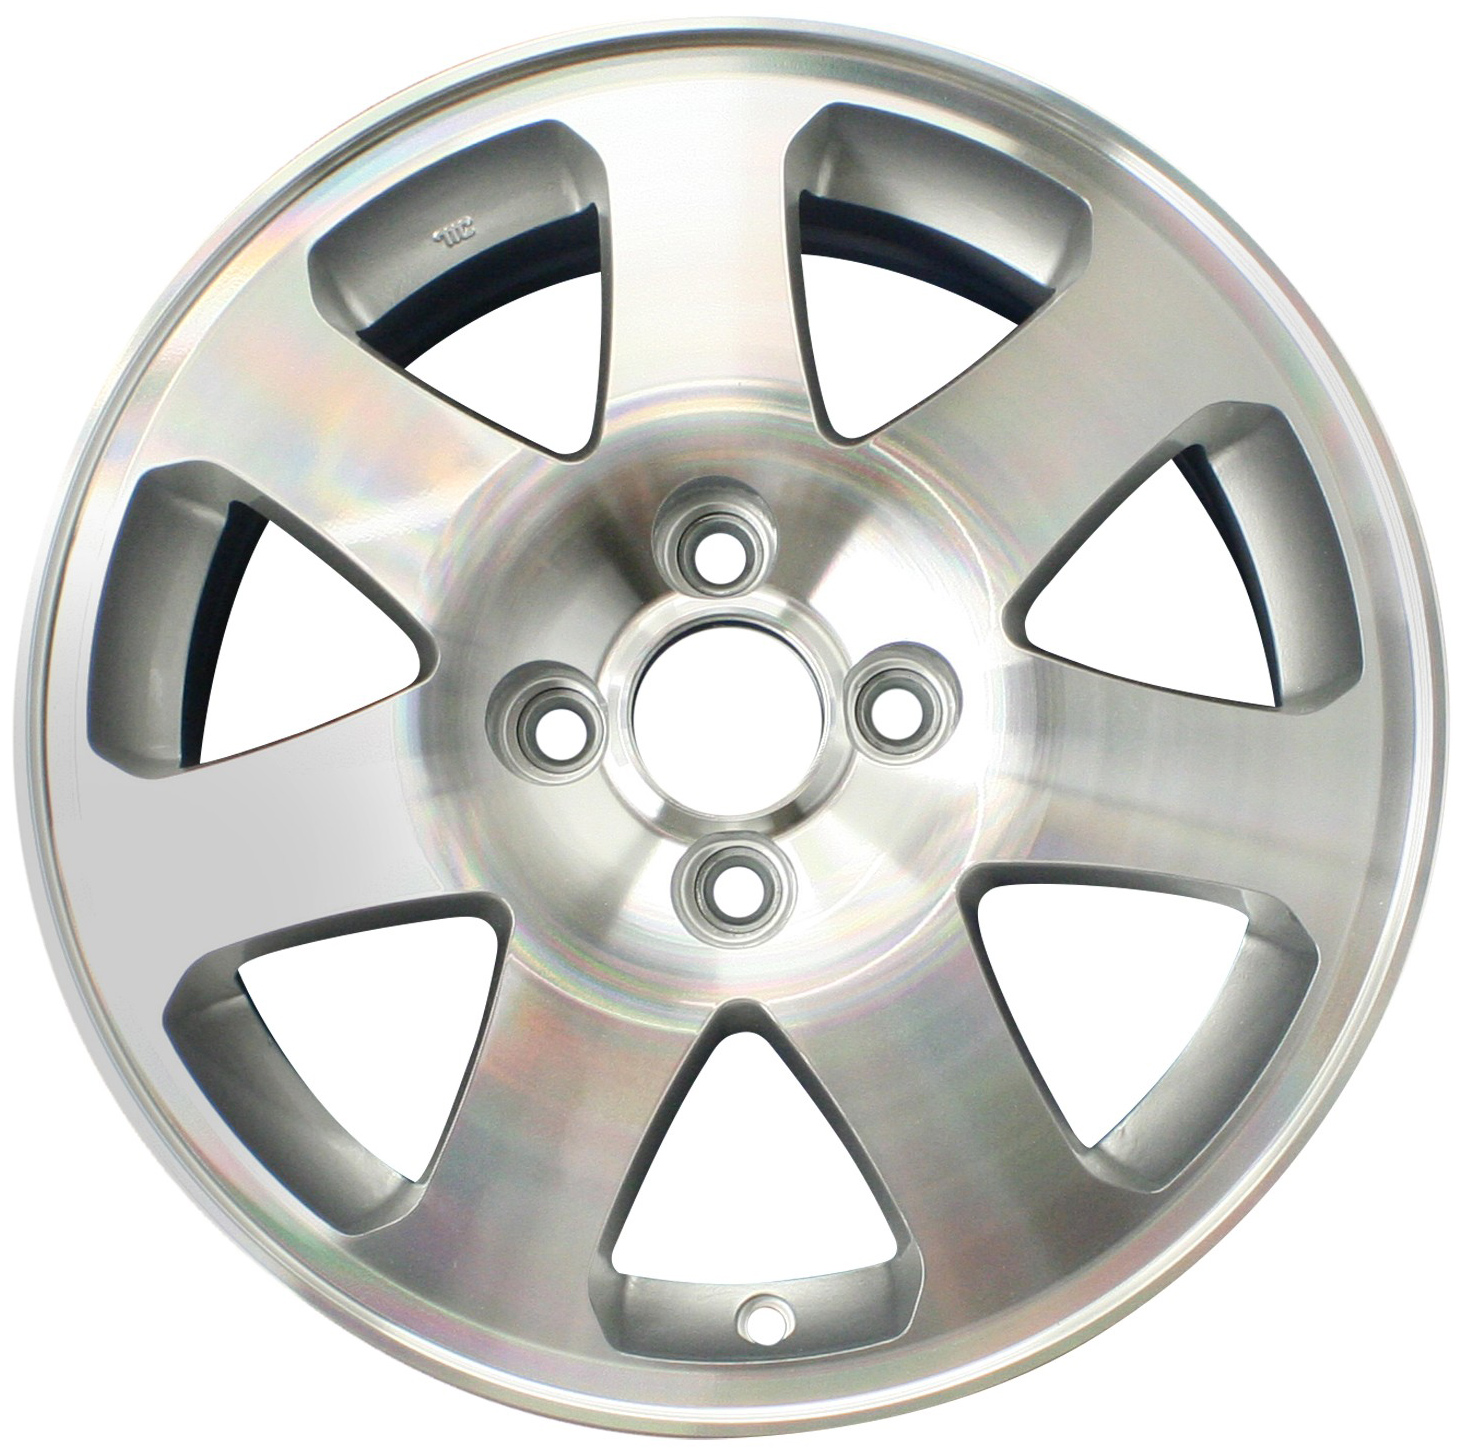 chevrolet 2 vehicle bolt pattern reference discounted